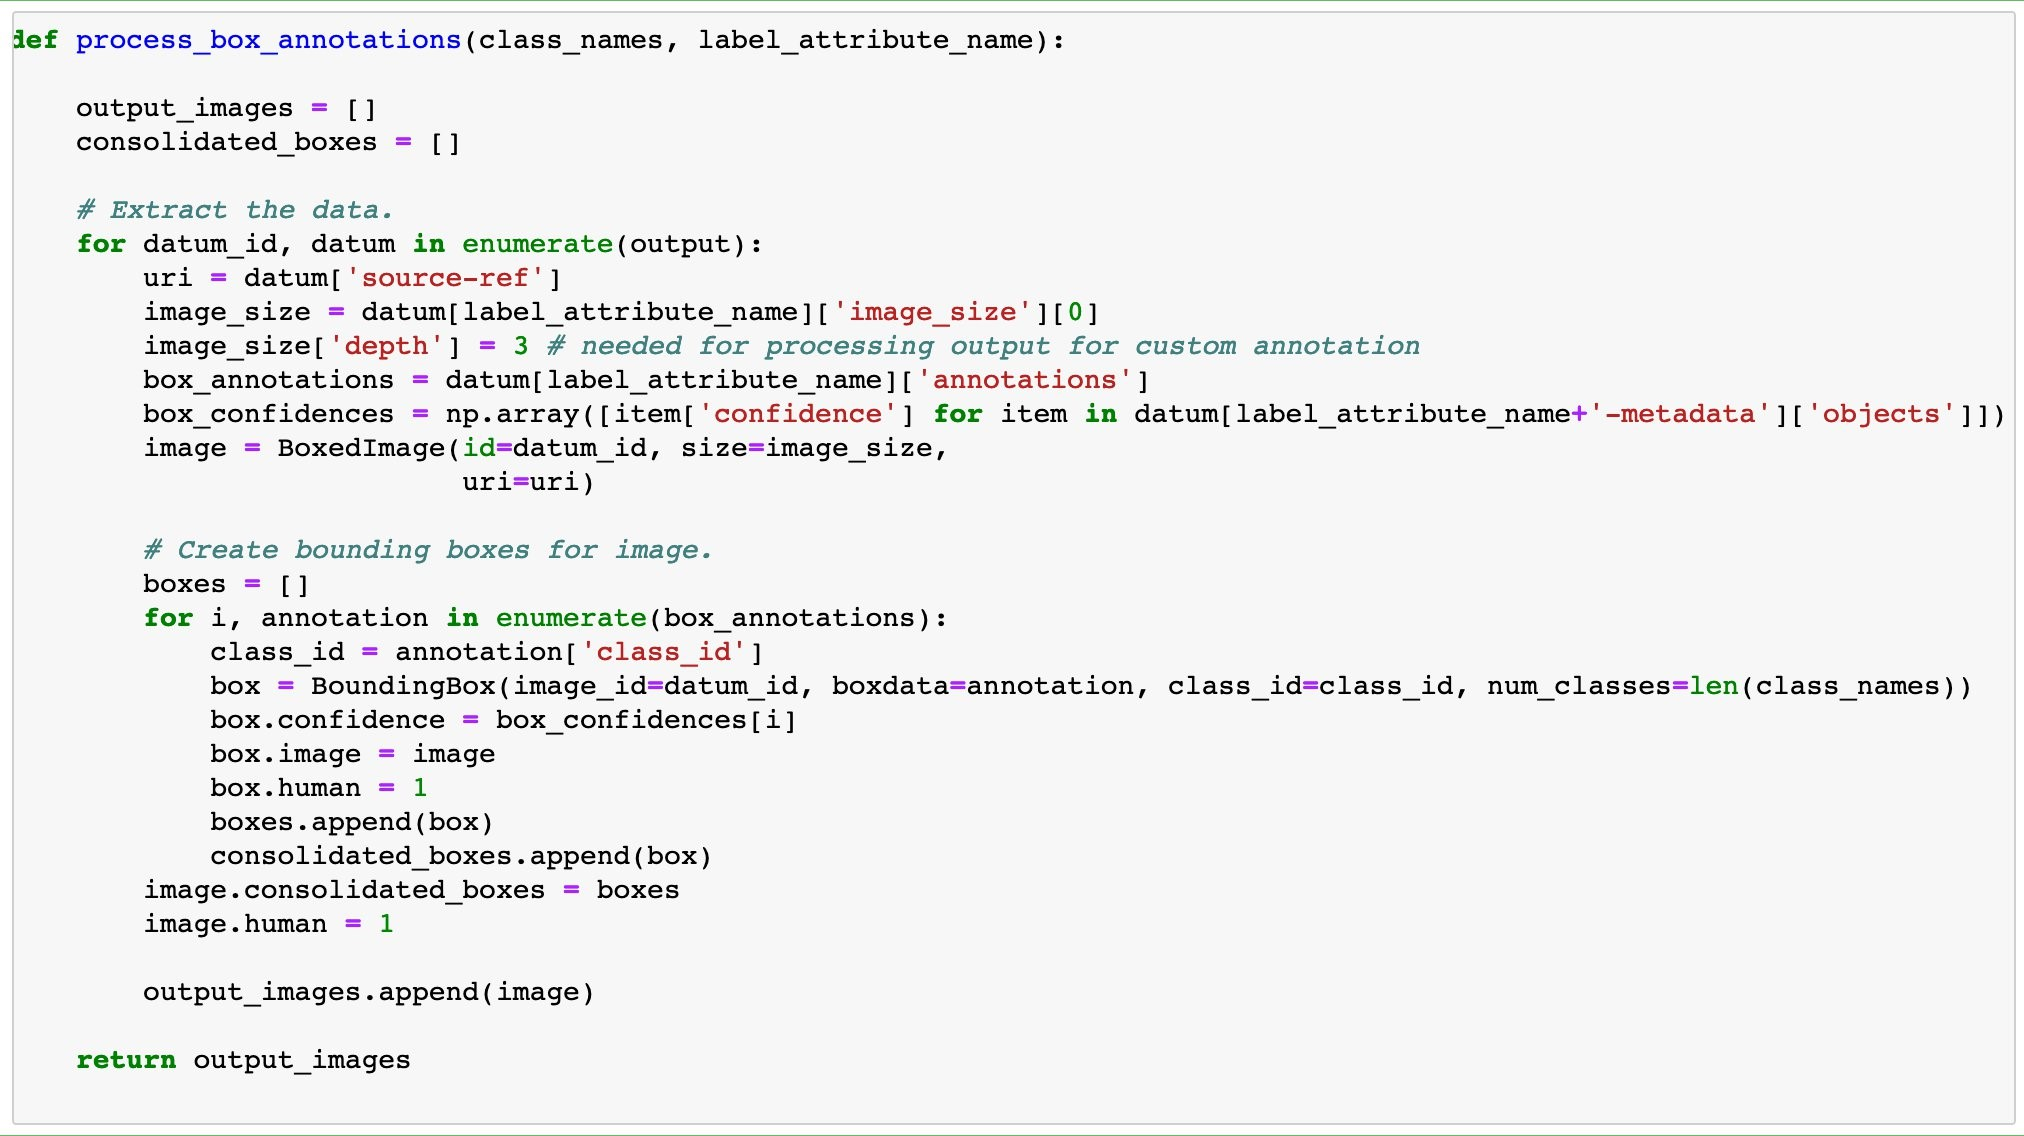 Code sample to show Helper functions